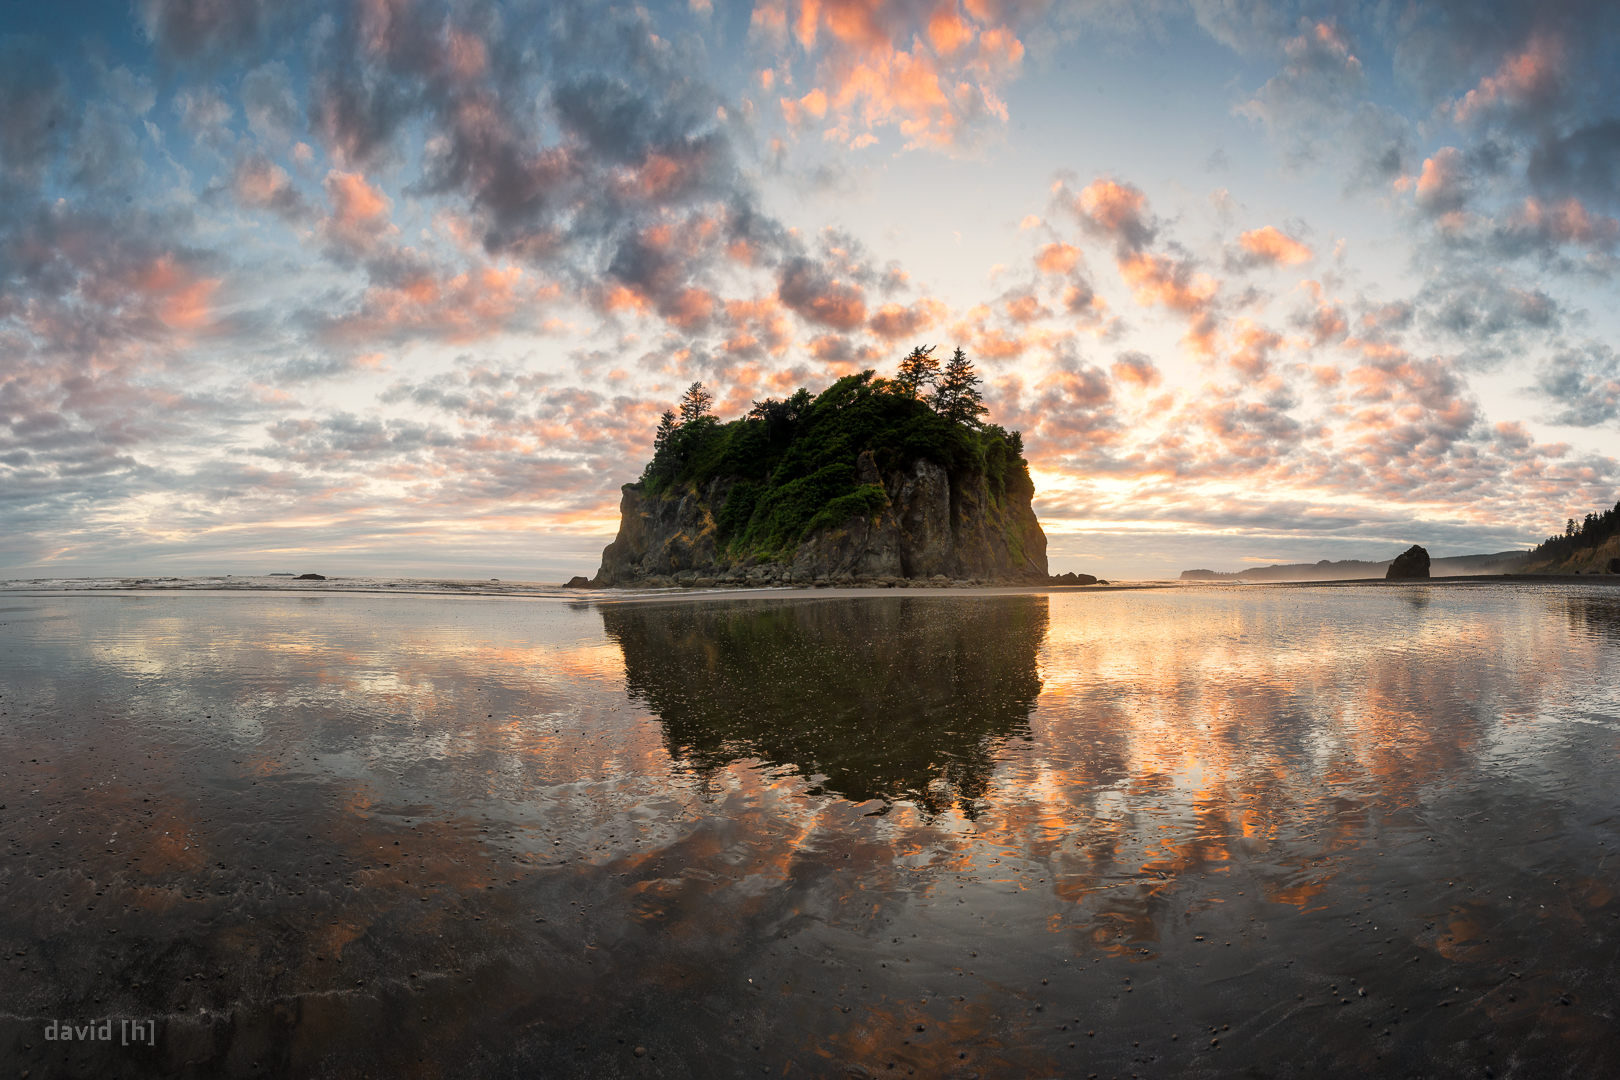 Sunset at Ruby Beach - perfect reflection due to the lowering tide leaving lots of water behind on the flat beach.